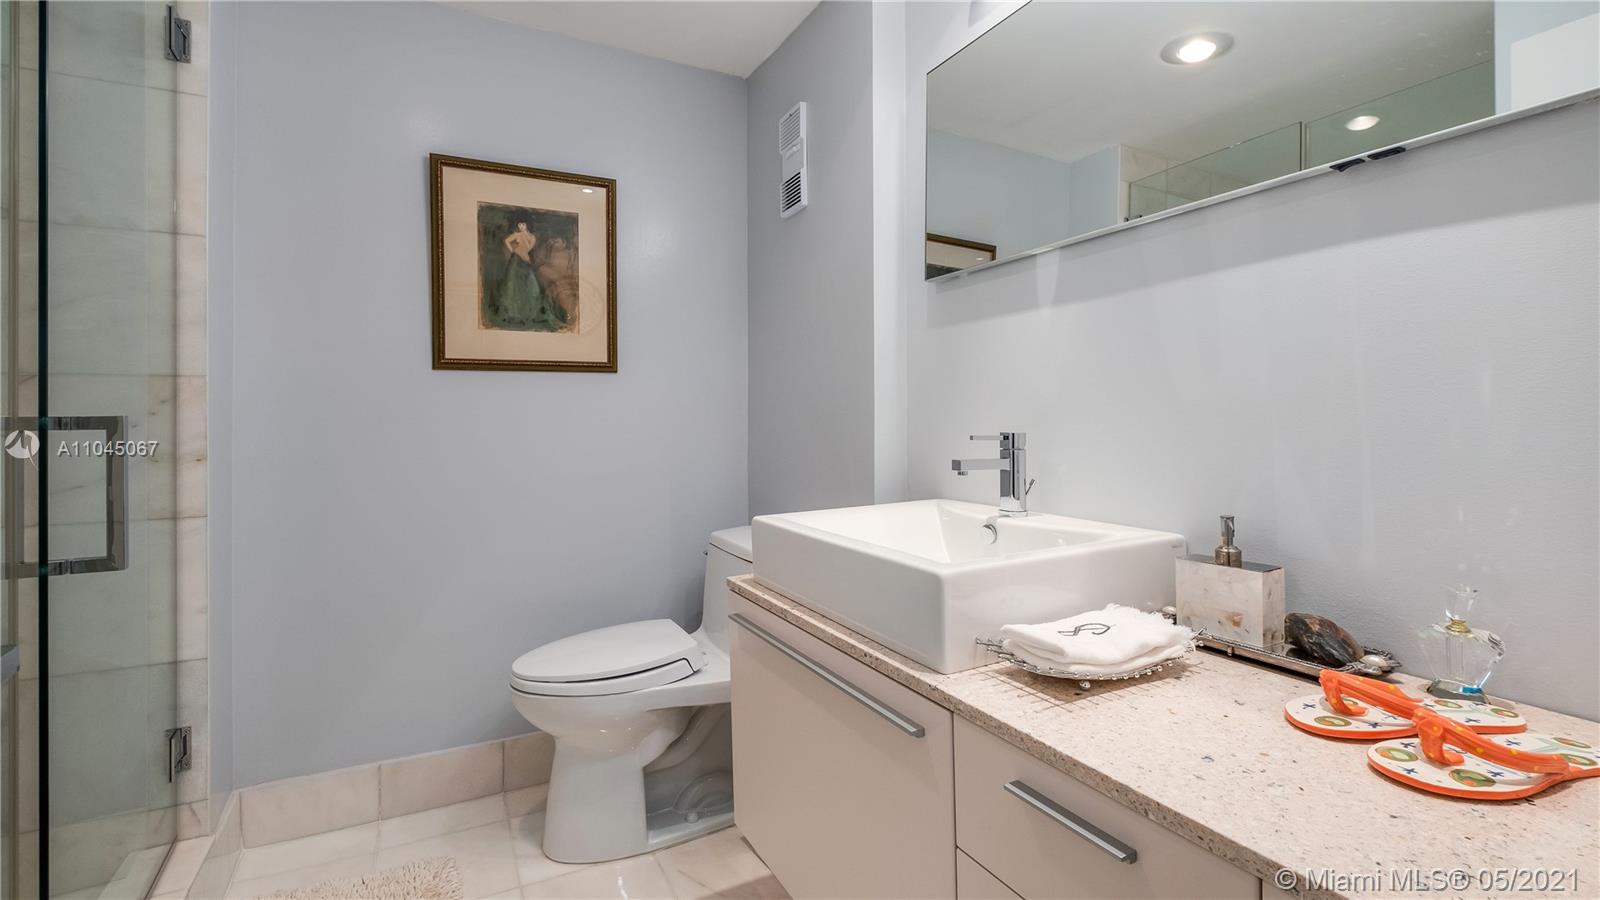 Photo of 20281 Country Club Dr #314, Aventura, Florida, 33180 - Bedroom